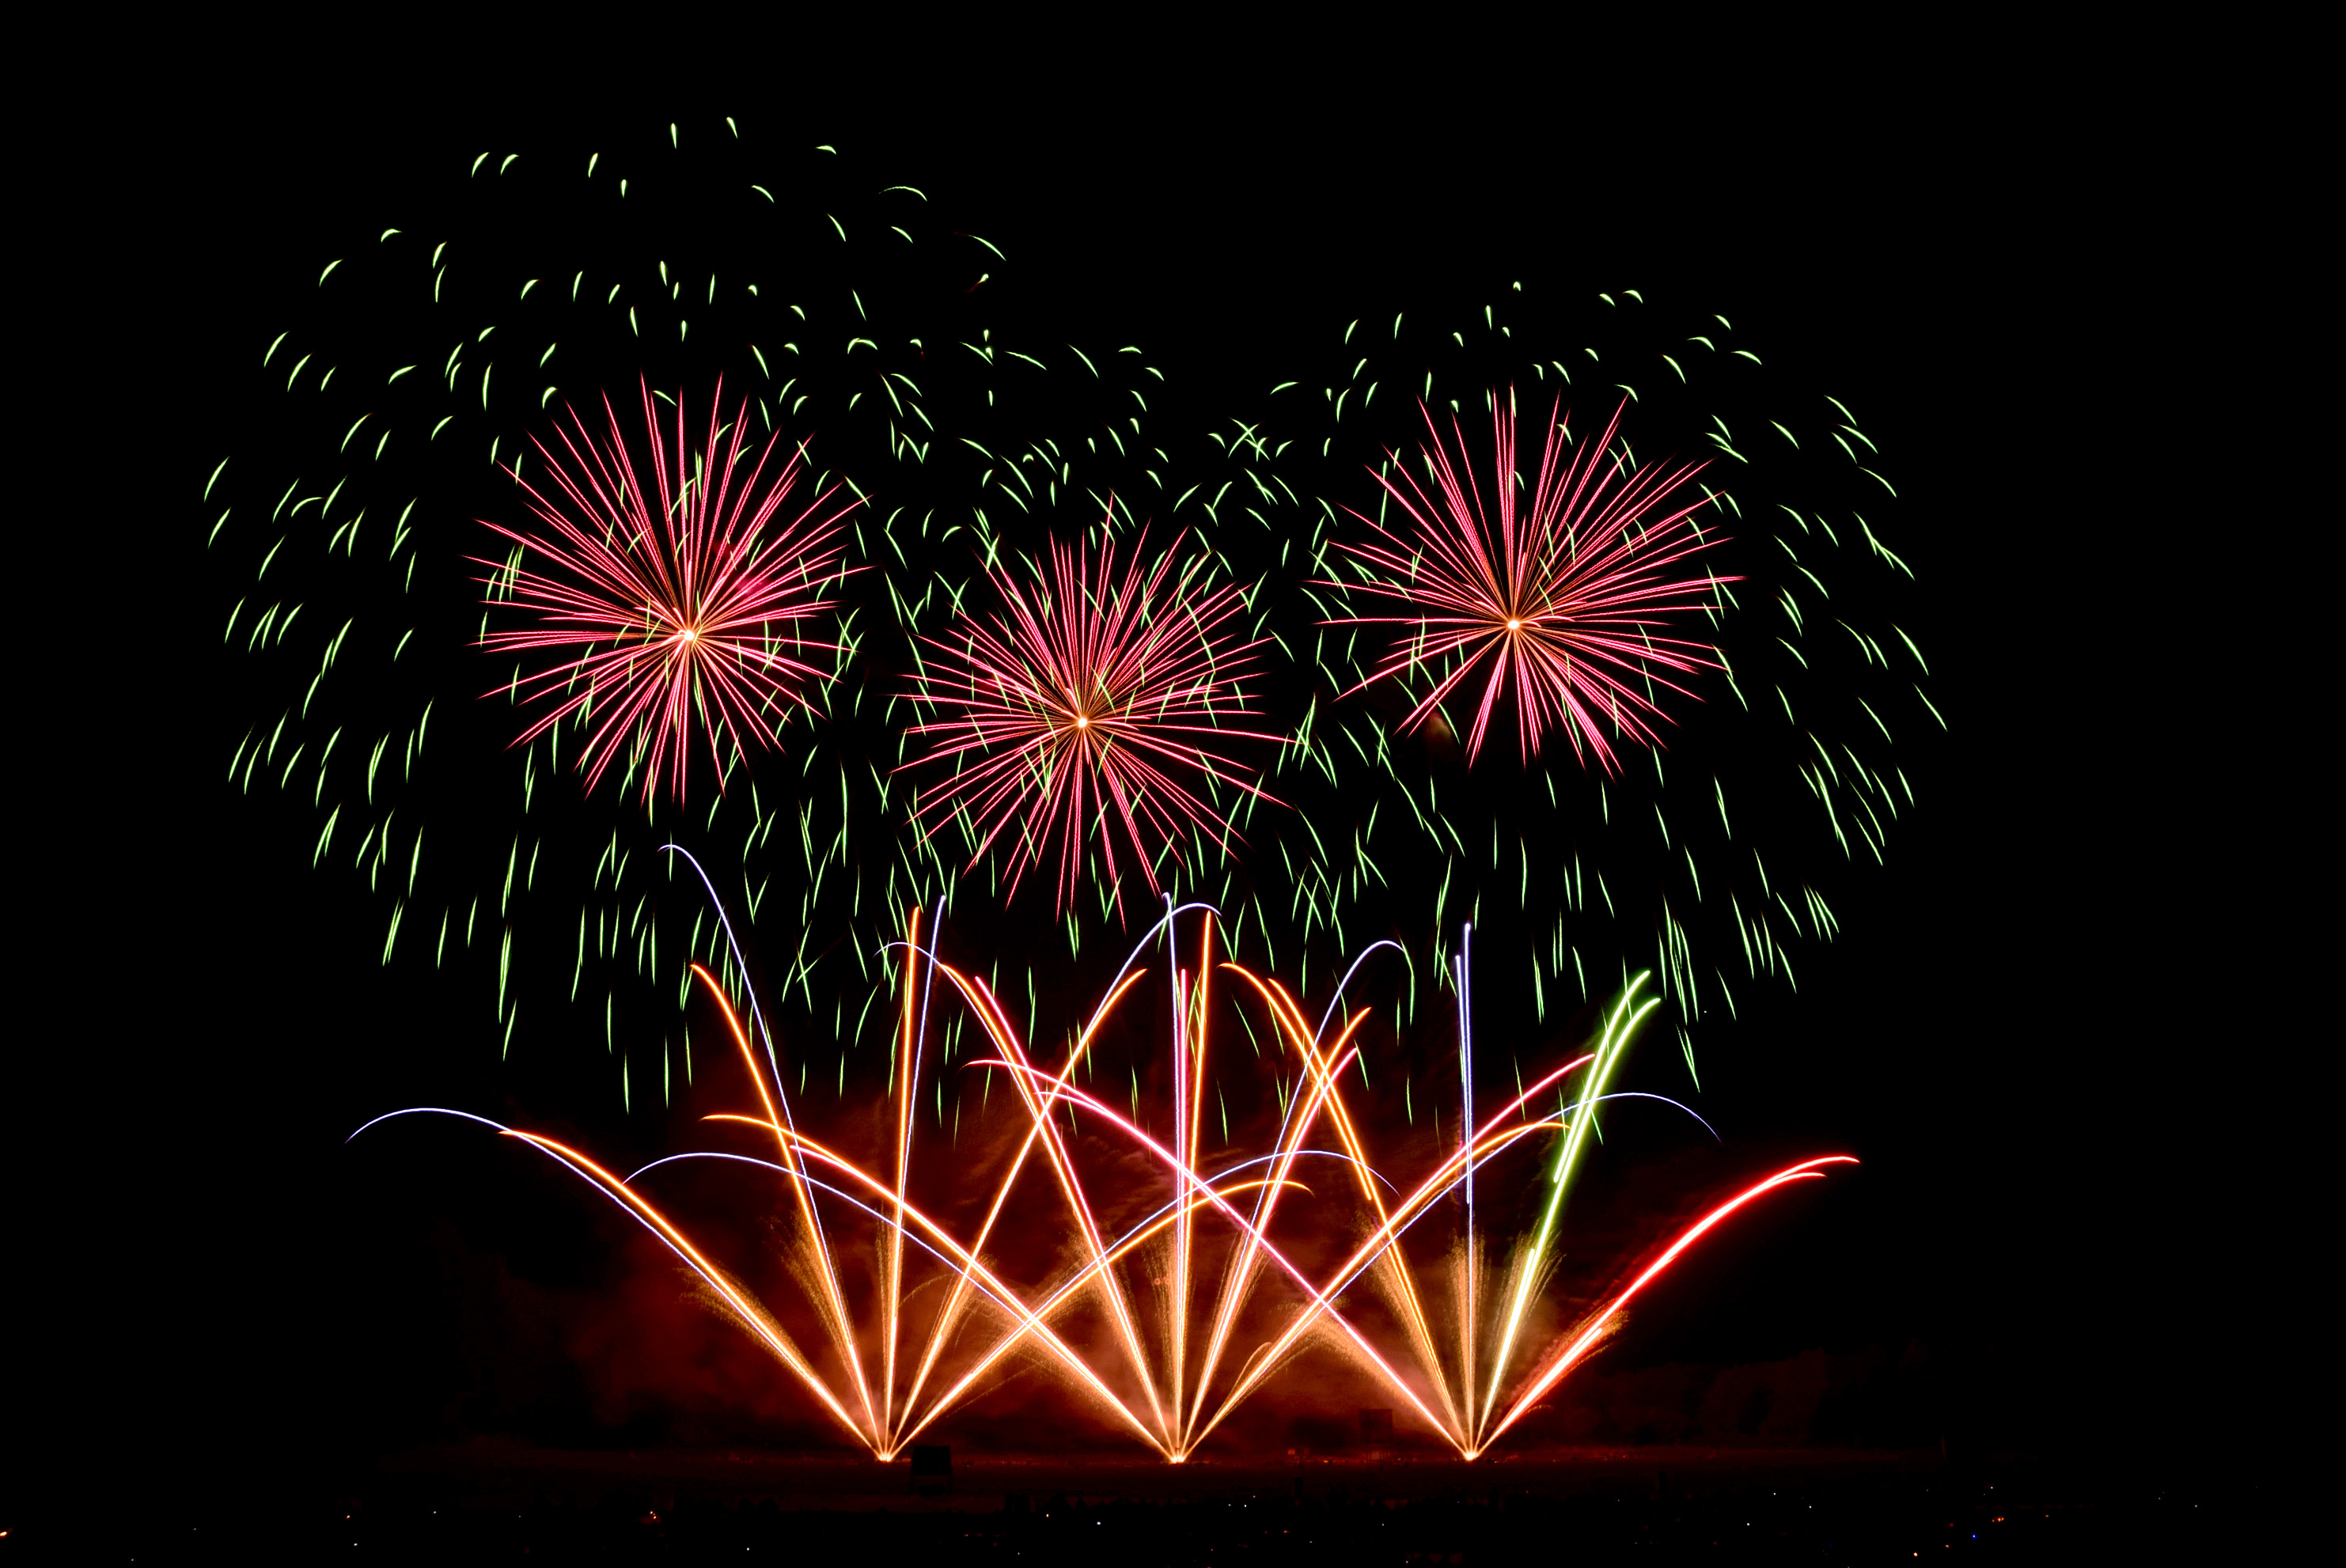 Fireworks for sale | Fireworks sale